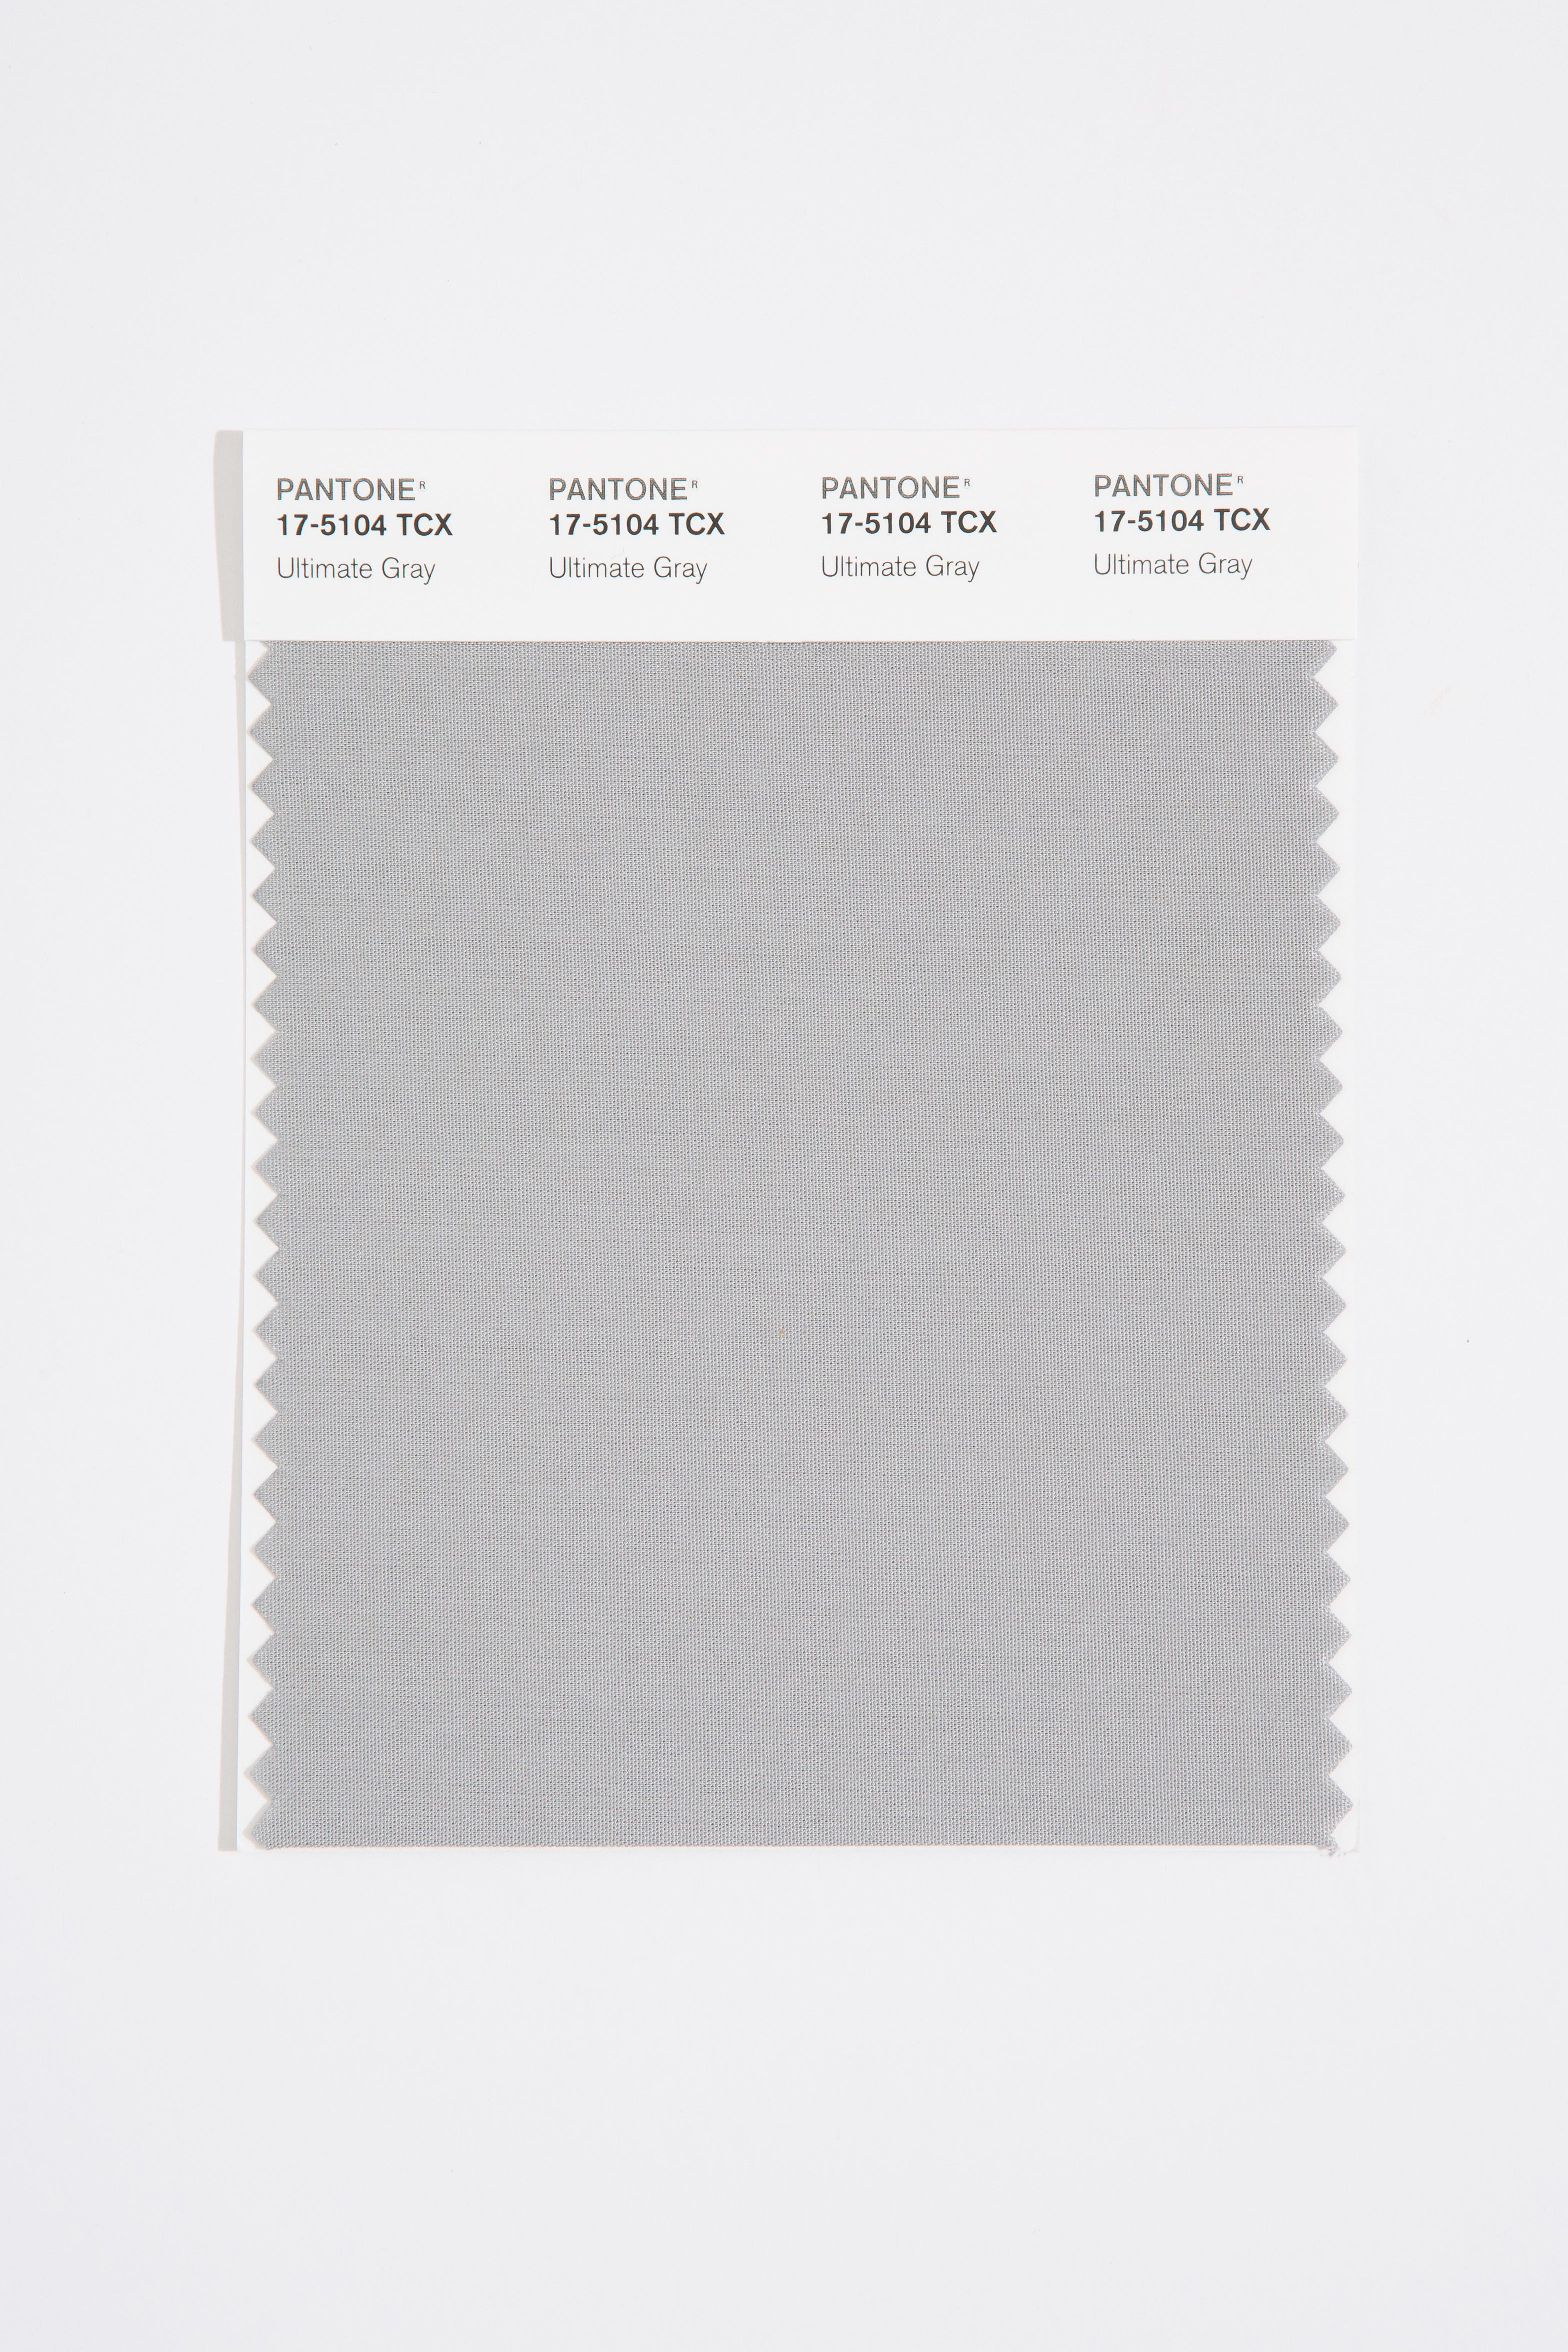 "According to Eismean, Ultimate Gray is ""solid resilient color that is something you can depend on."" (Image: Pantone)"